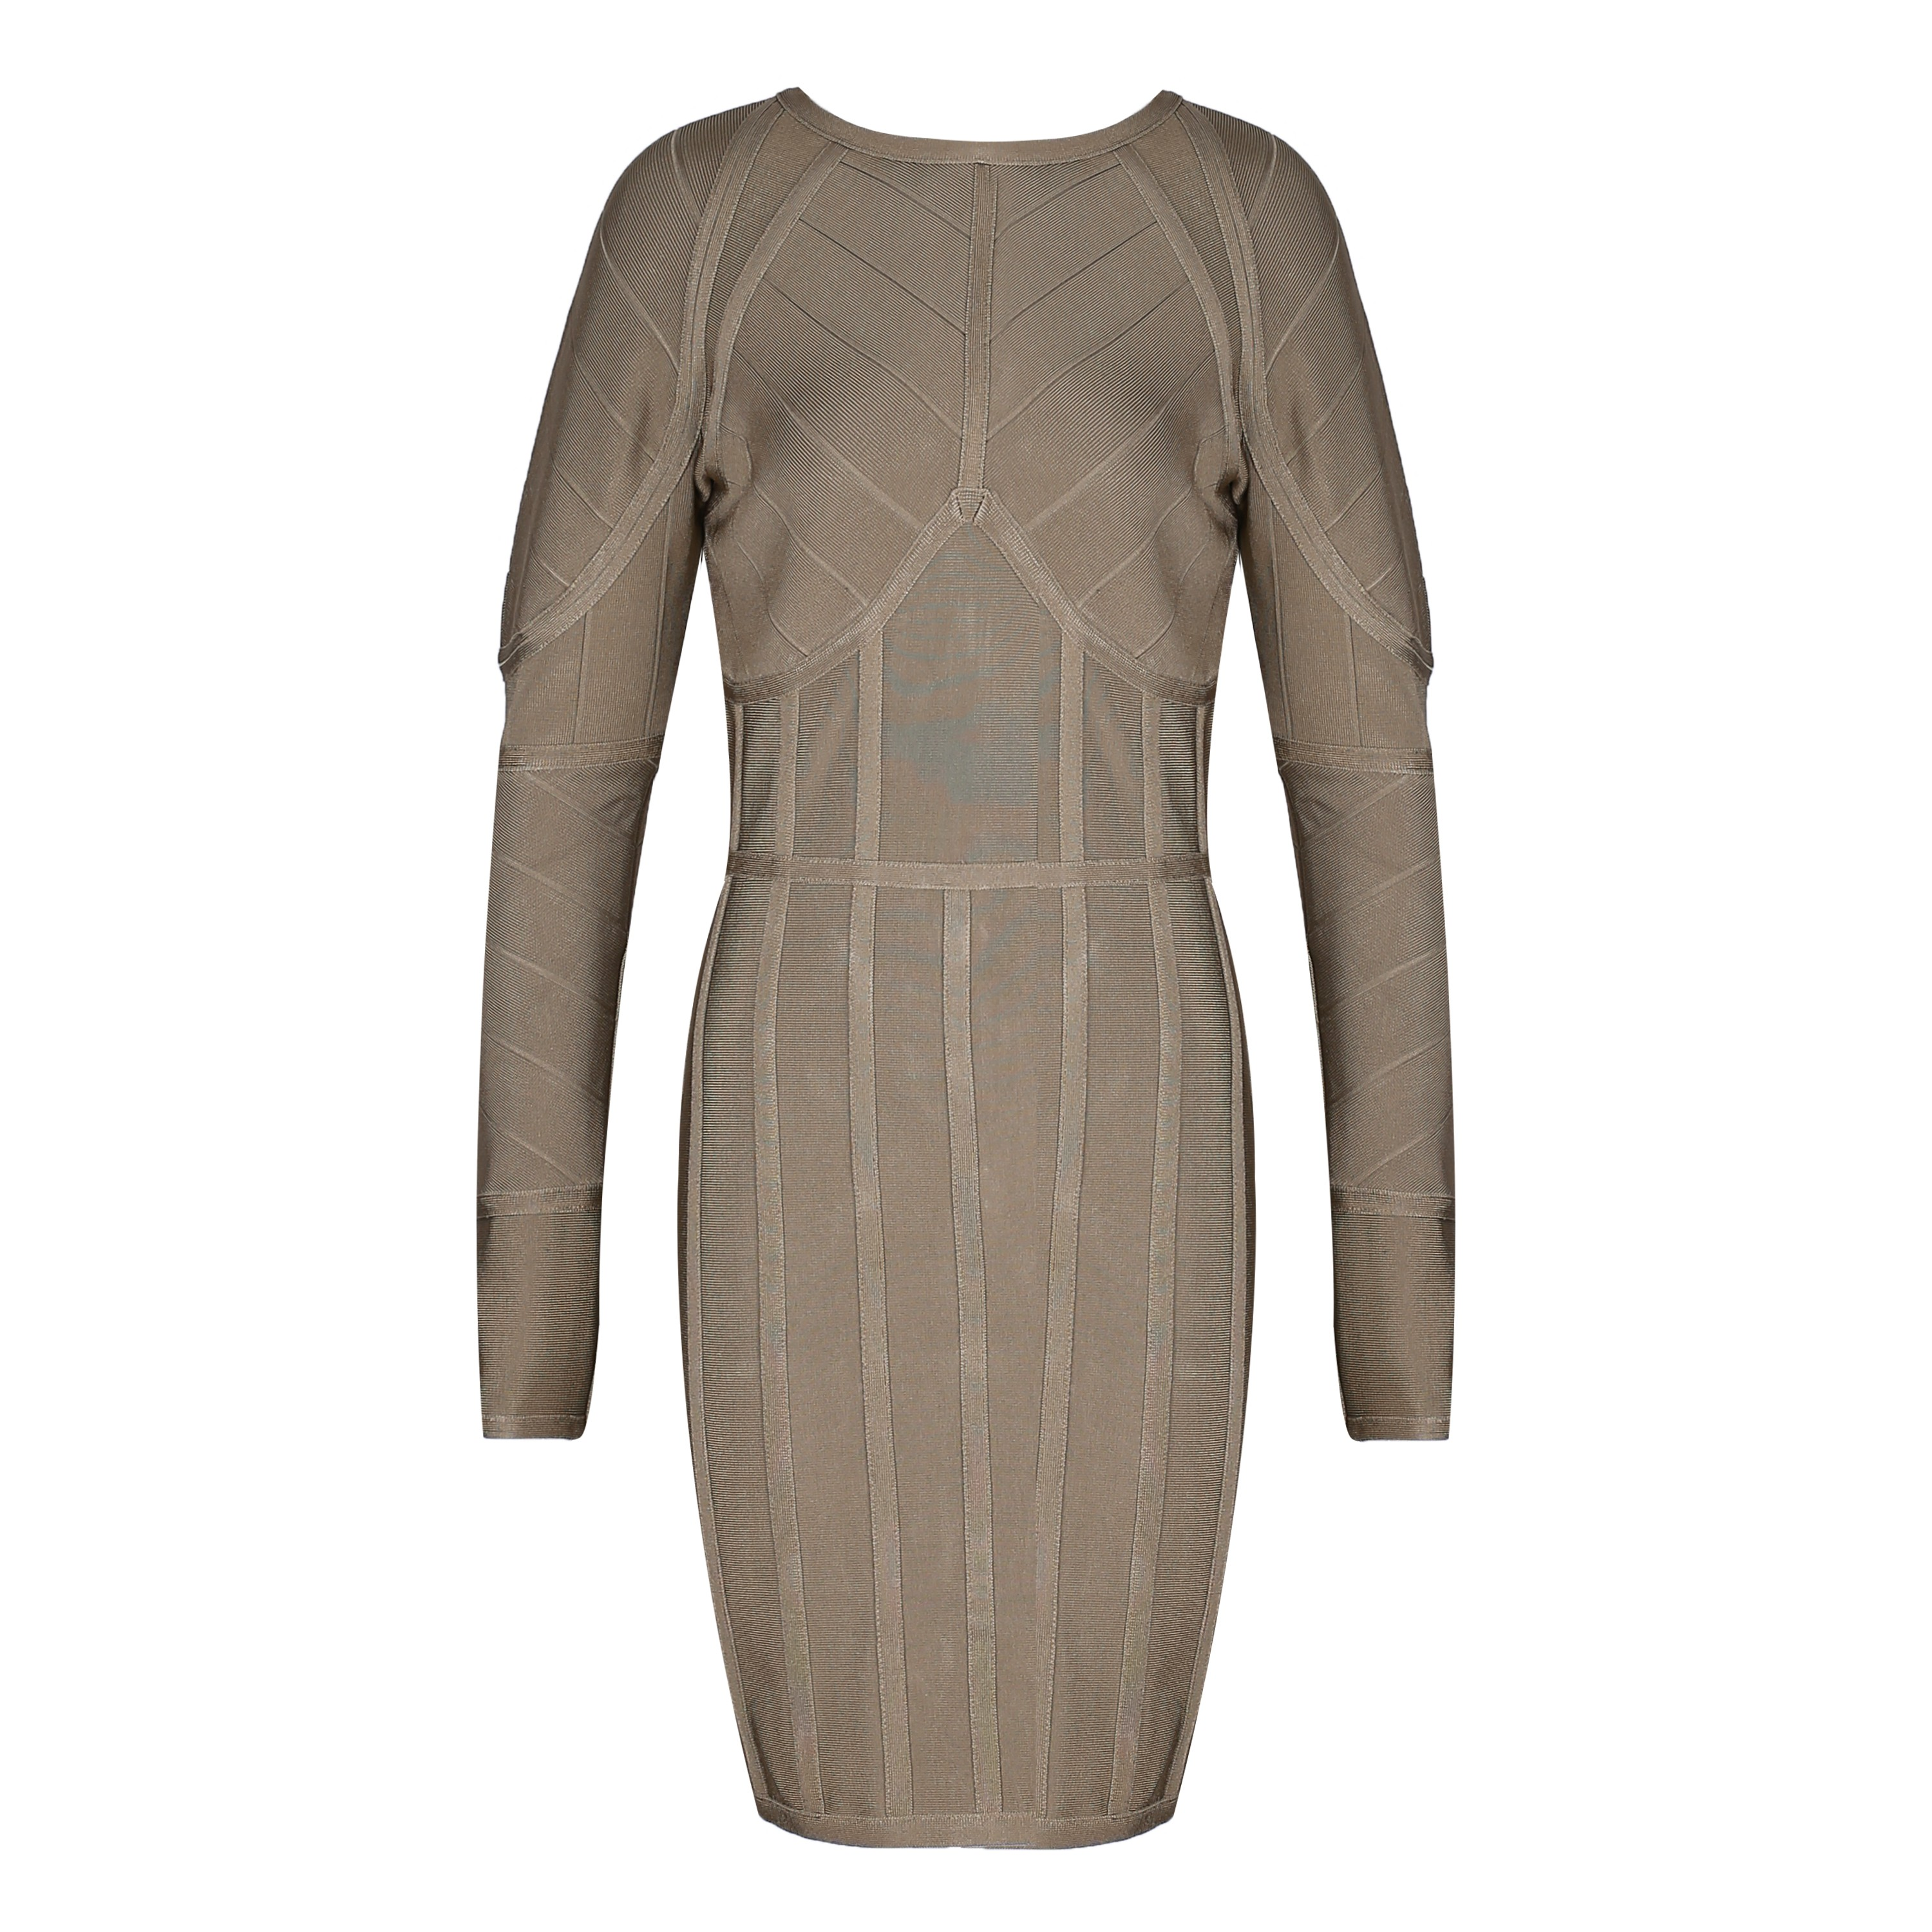 Light Brown Round Neck Long Sleeve Mini Weave High Quality Bandage Dress HI909-Light Brown